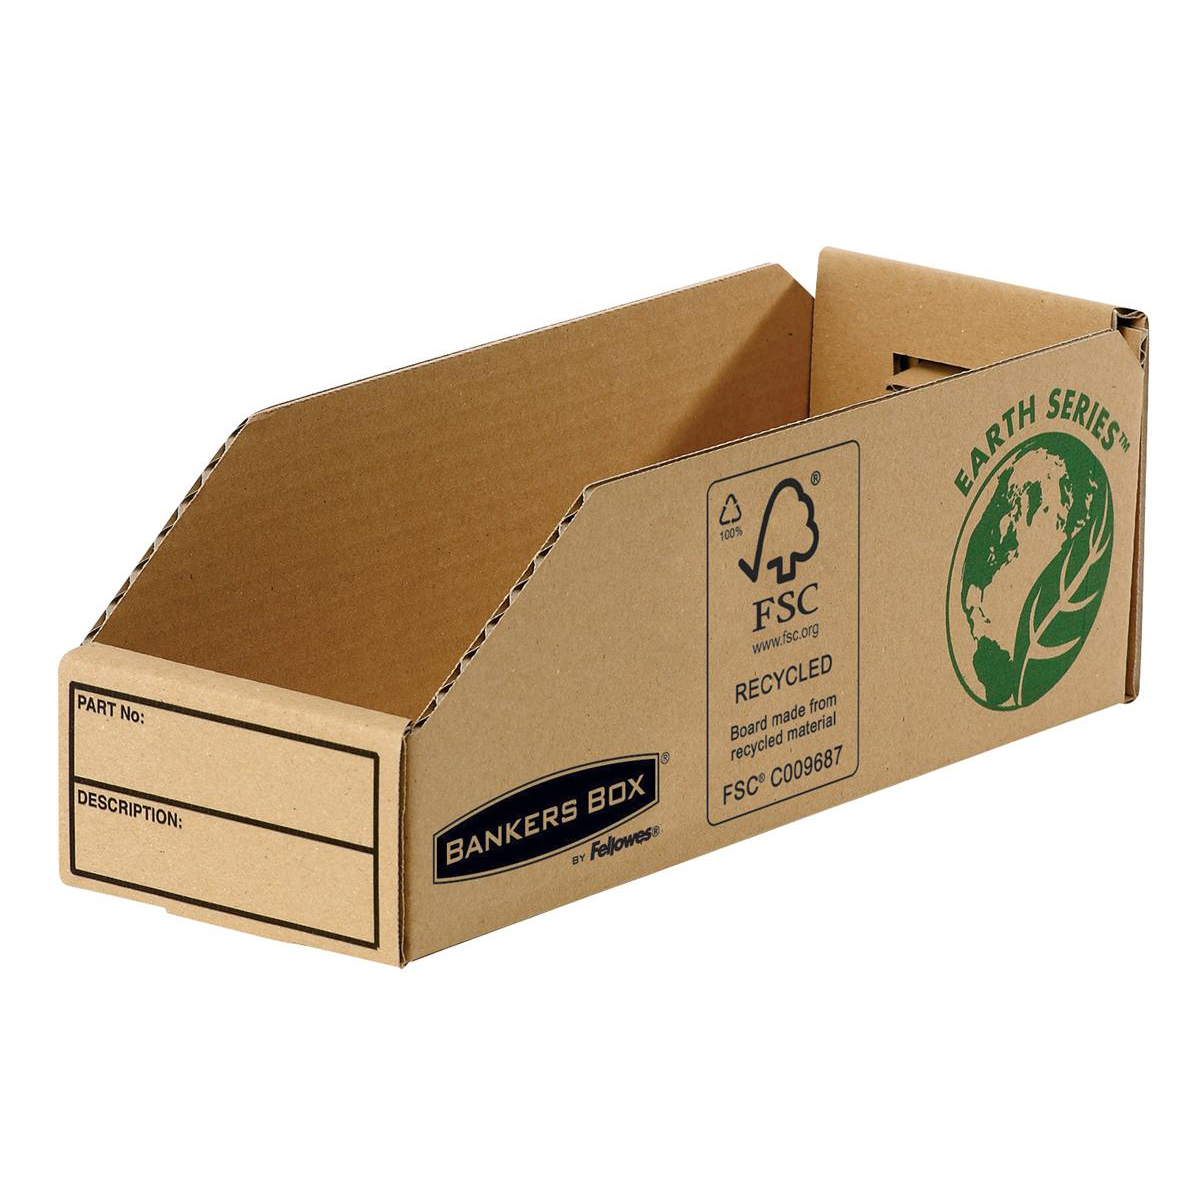 Bankers Box by Fellowes Parts Bin Corrugated Fibreboard Packed Flat W98xD280xH102mm Ref 07353 Pack 50